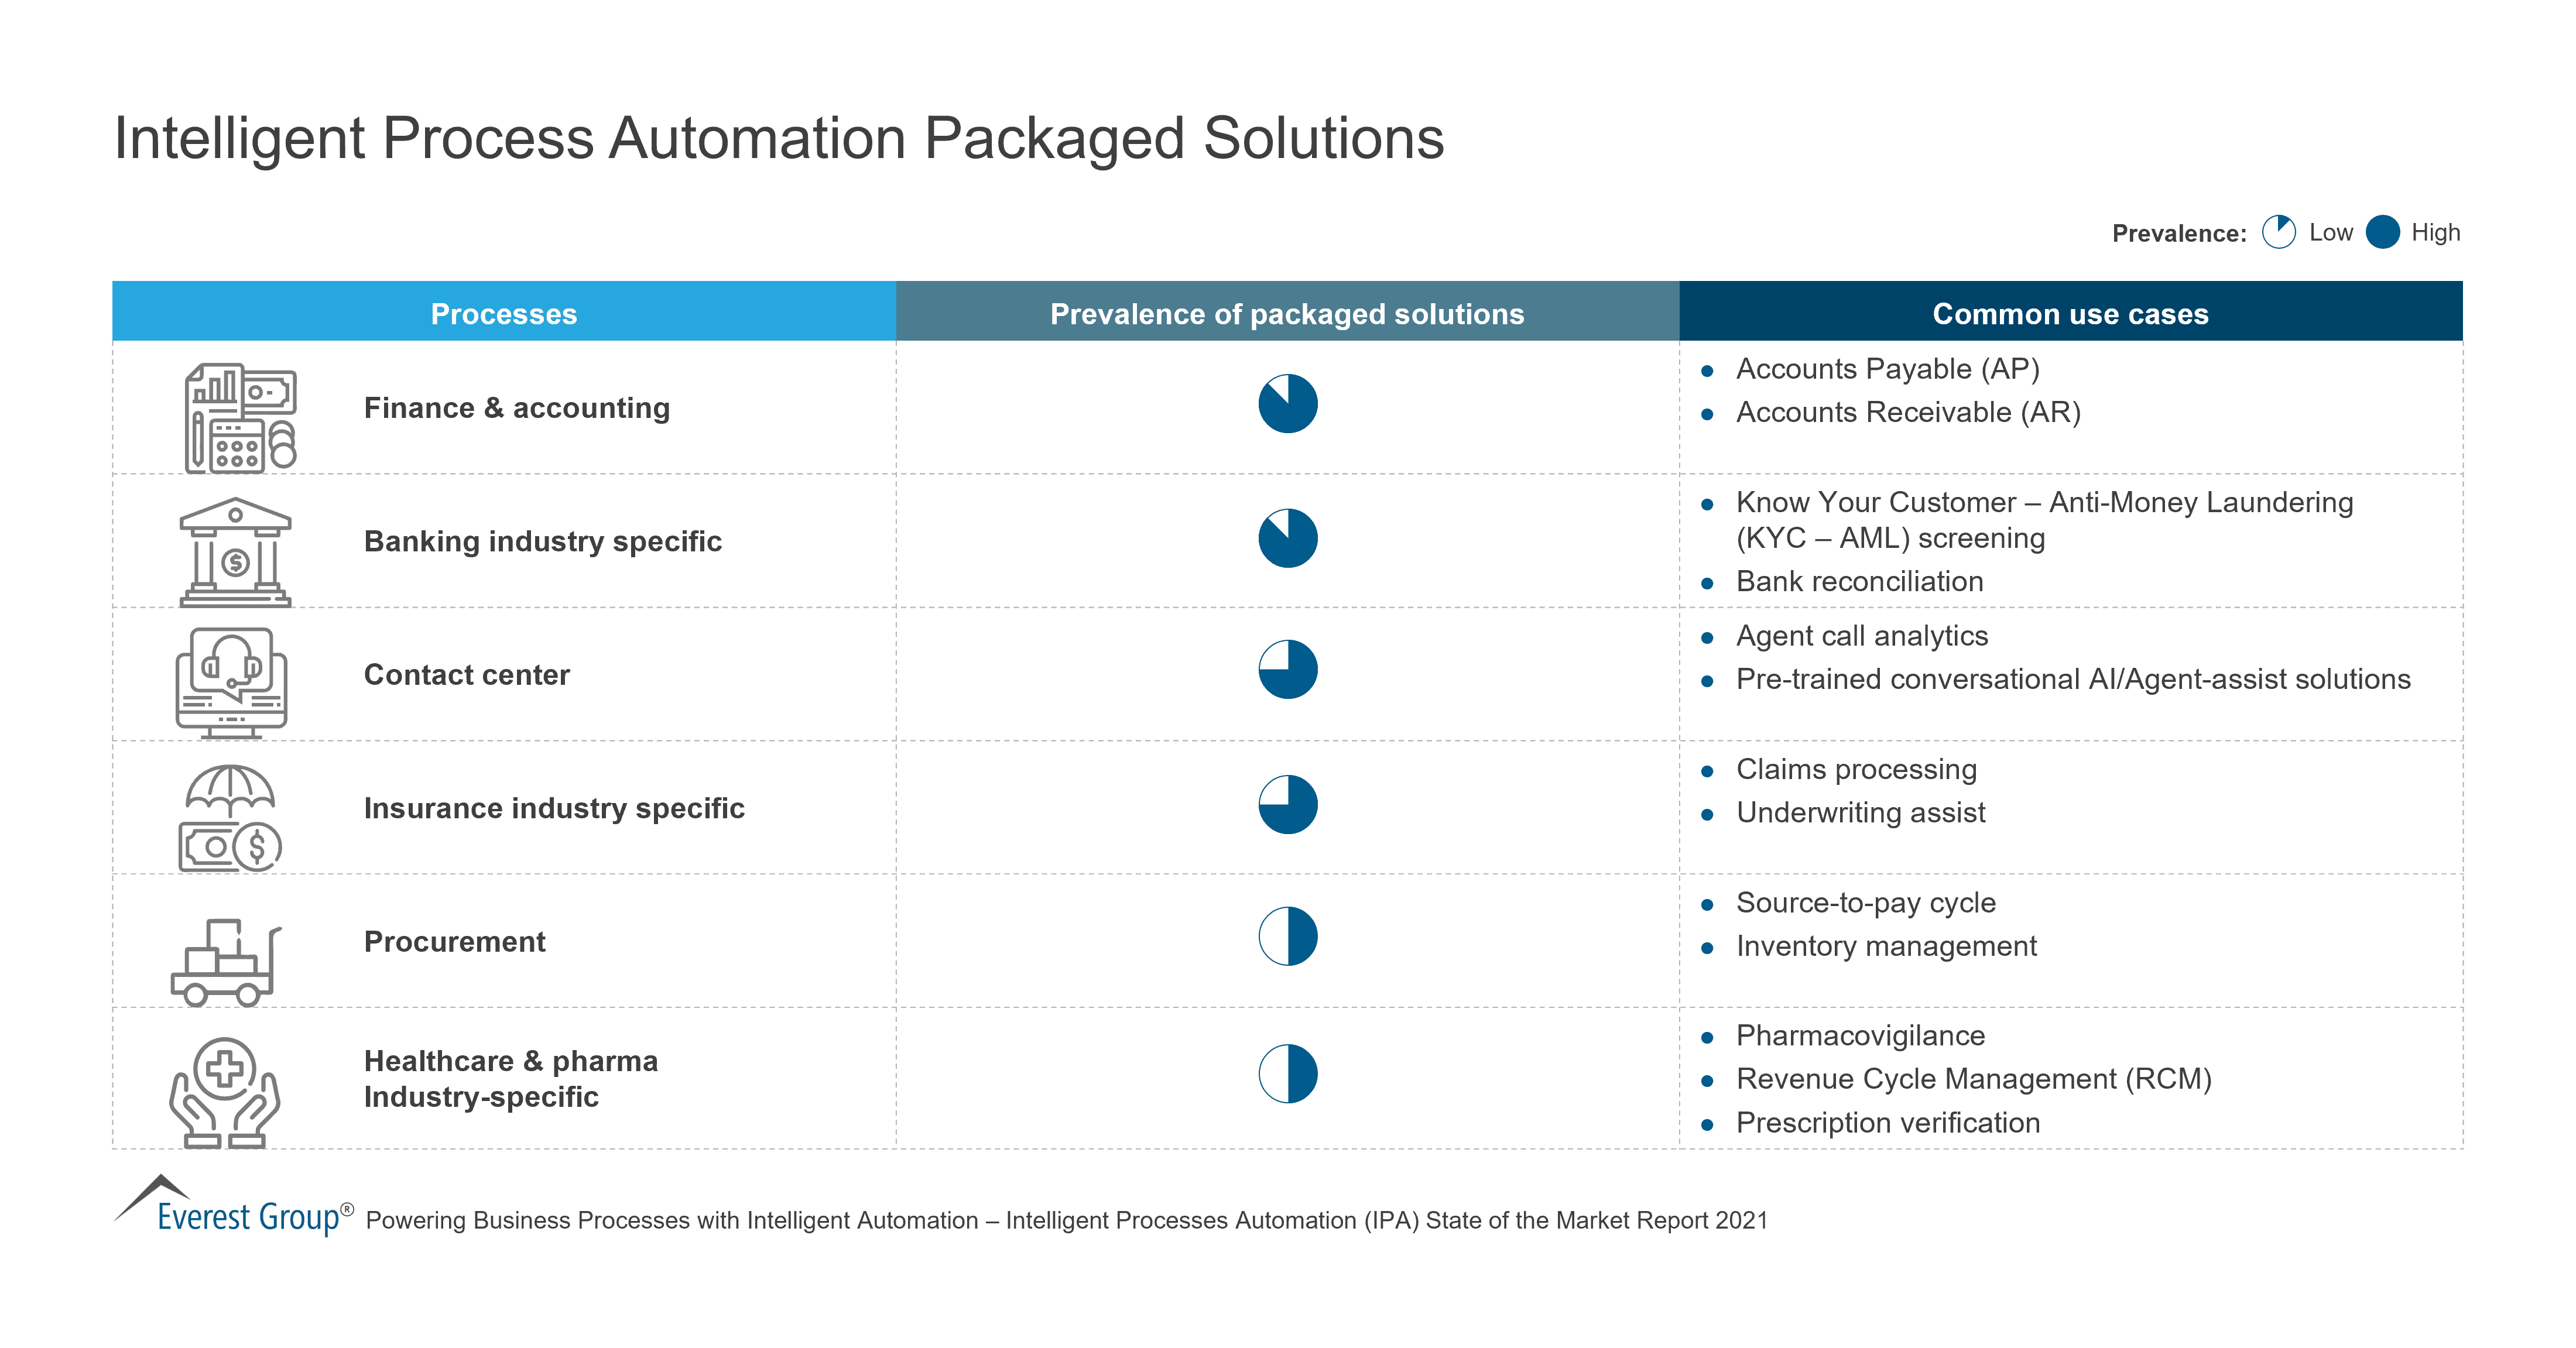 Intelligent Process Automation Packaged Solutions